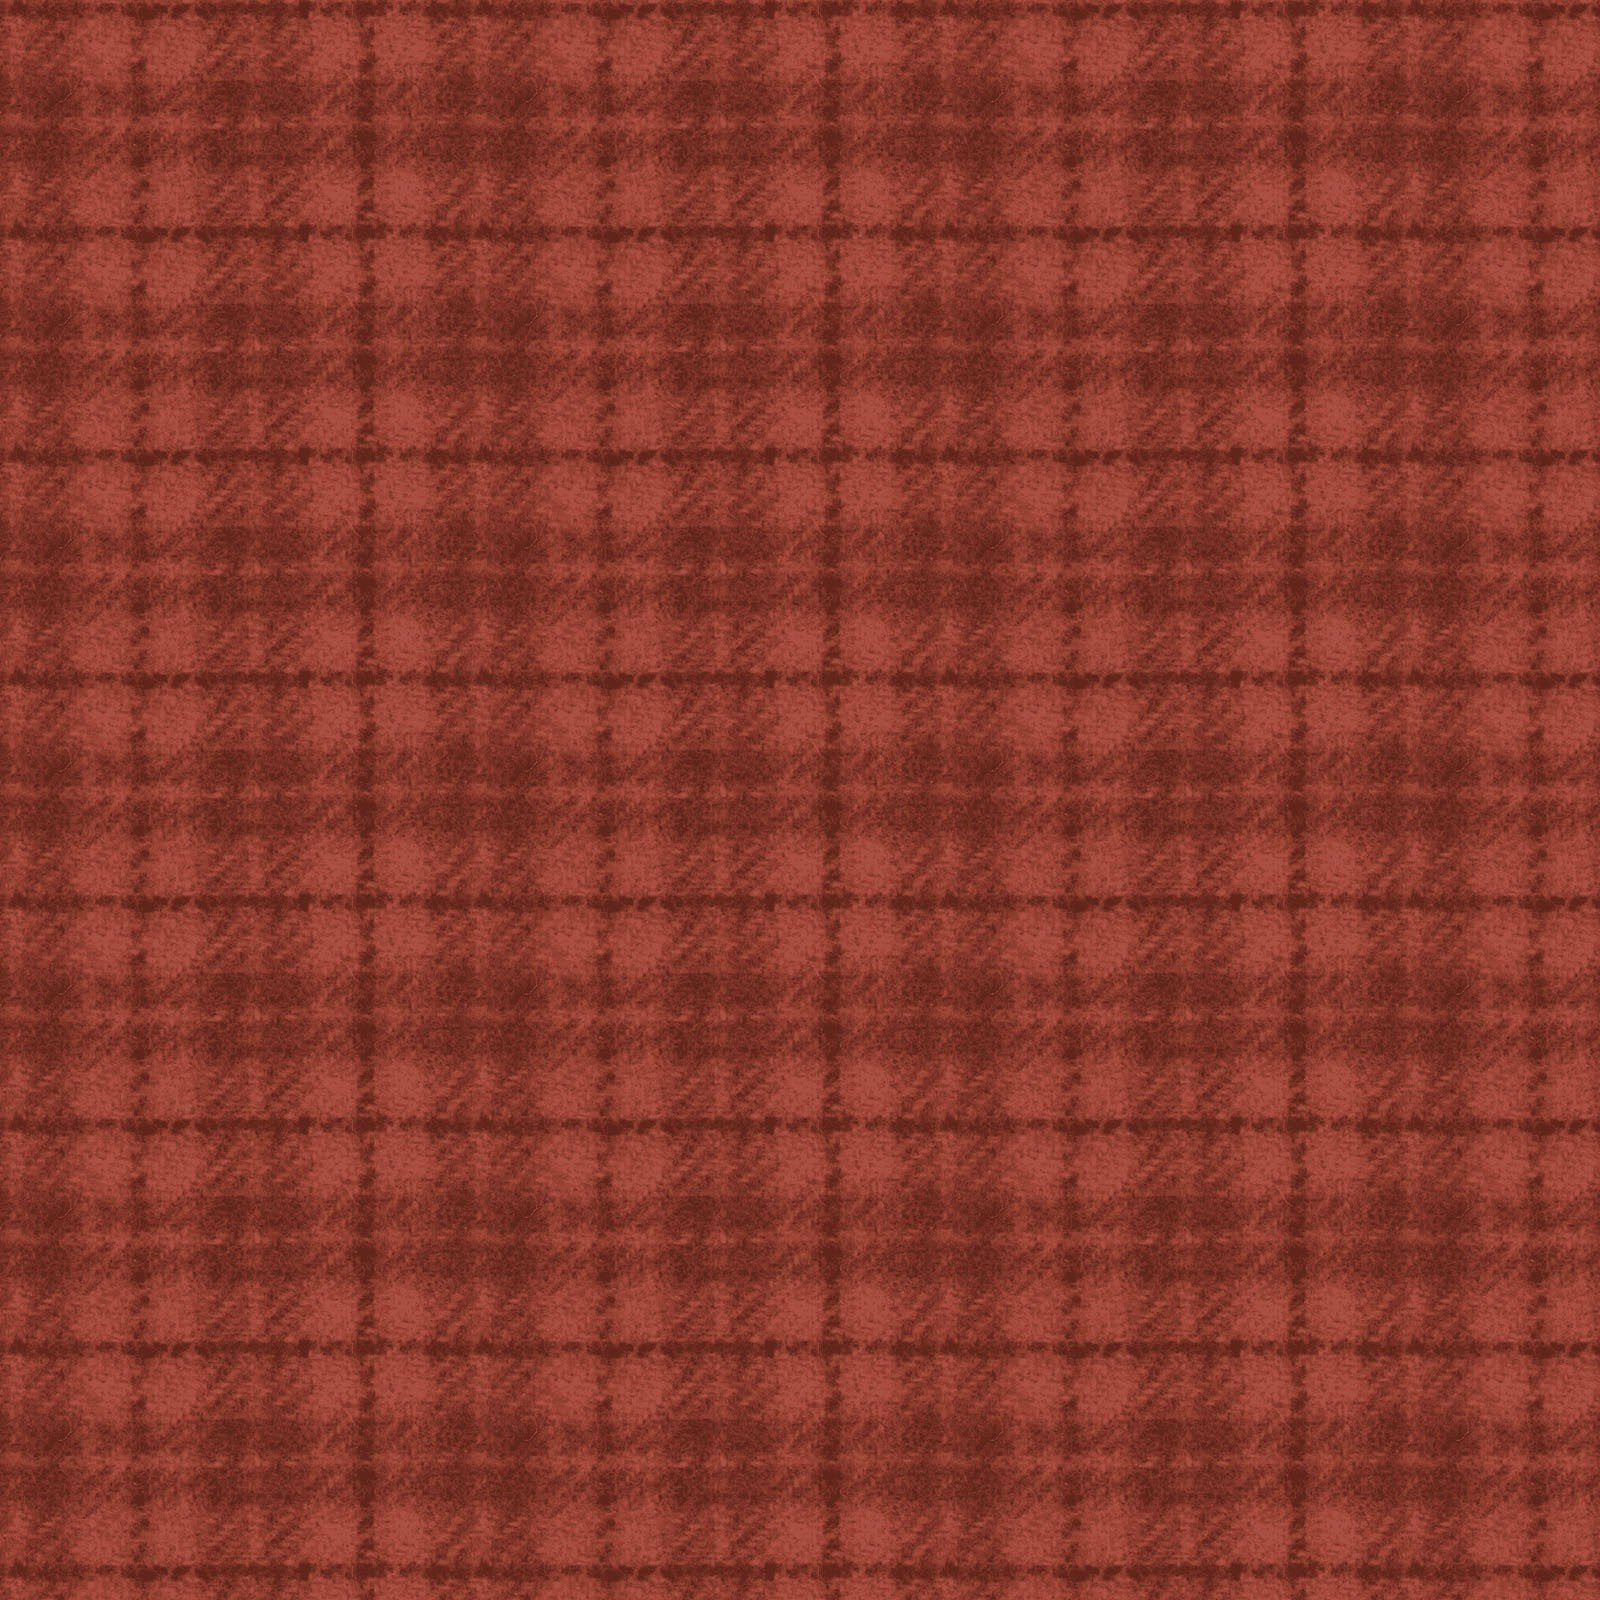 Woolies Flannel Plaid Red Orange (MASF18502-RO)